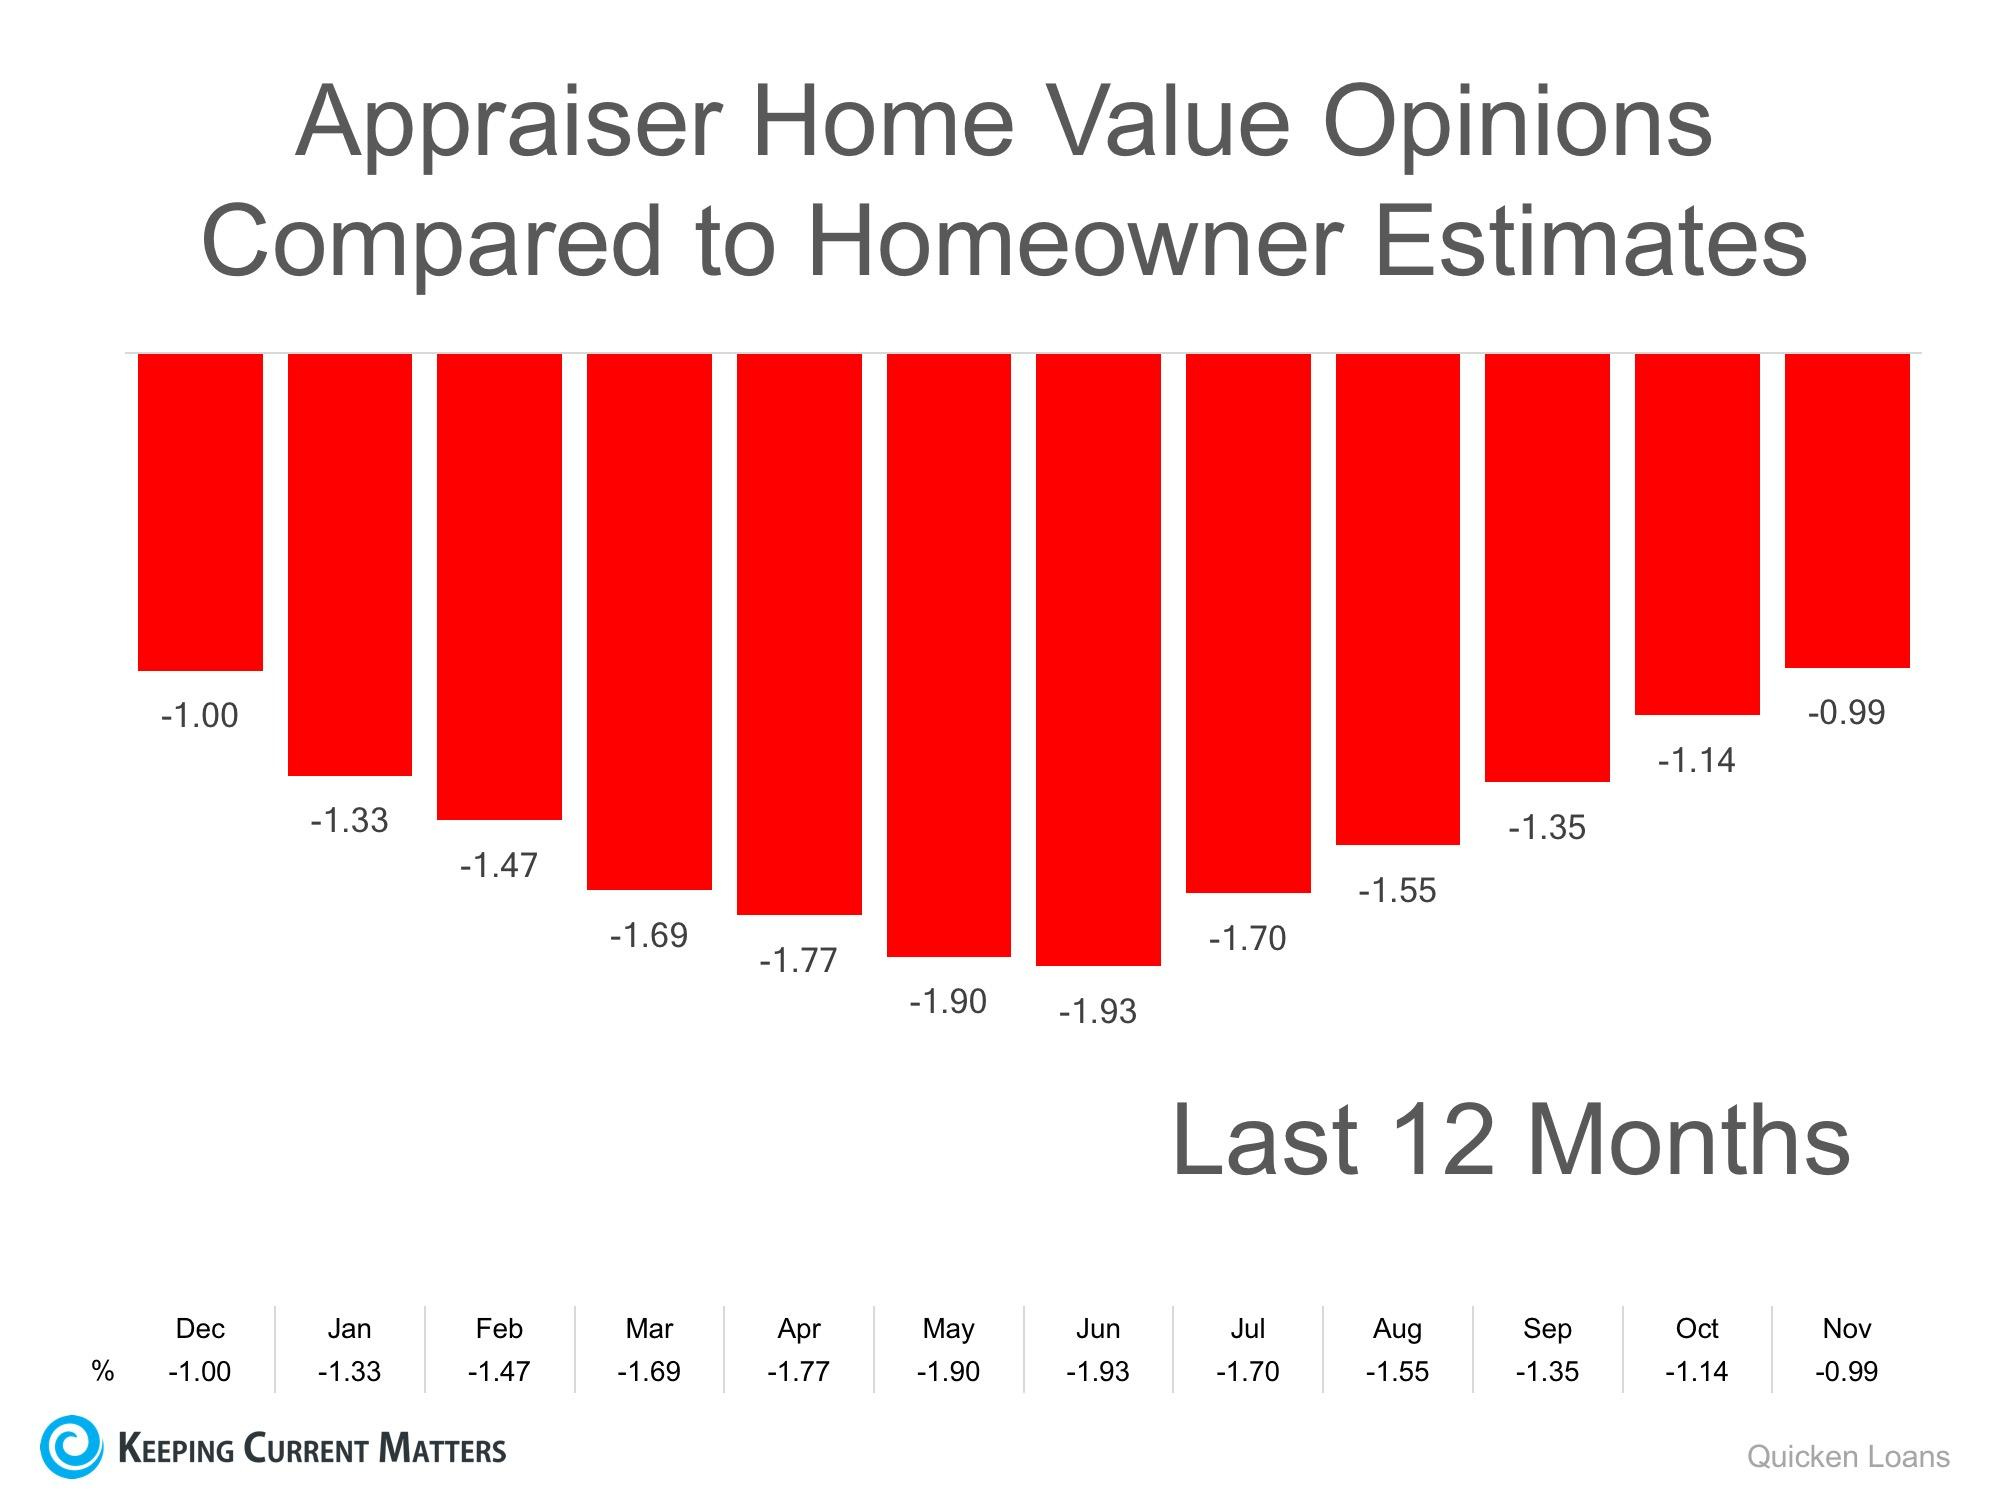 A graph illustrating appraiser home value estimates versus homeowners